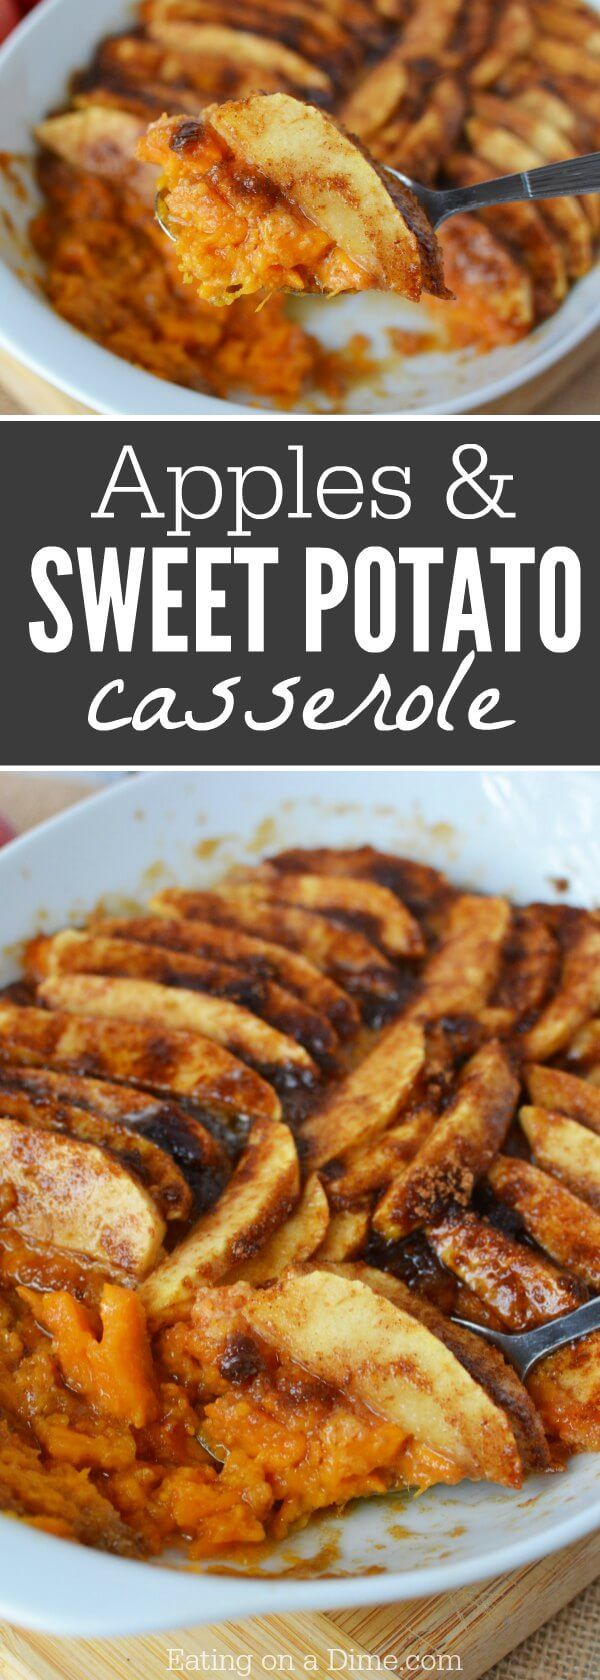 Easy Sweet Potato Casserole Recipe with Apple - Easy and Delicious!